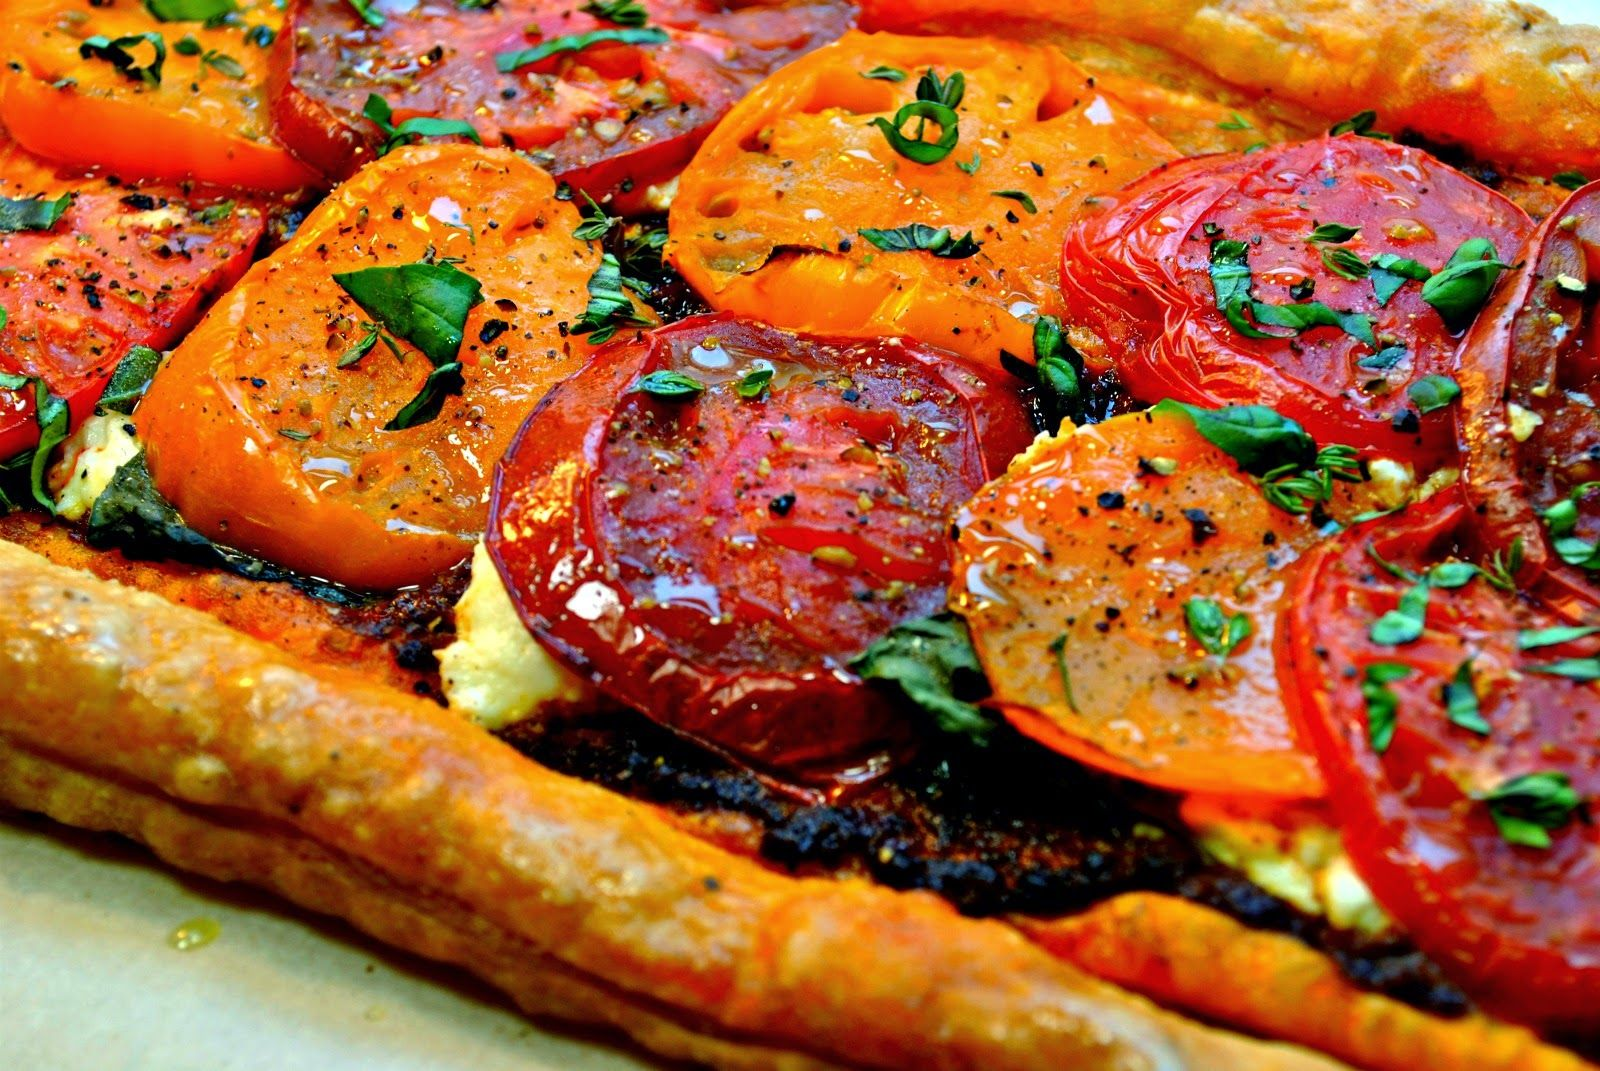 Double Tomato Tart with Ricotta and Basil | From Everyday to Gourmet